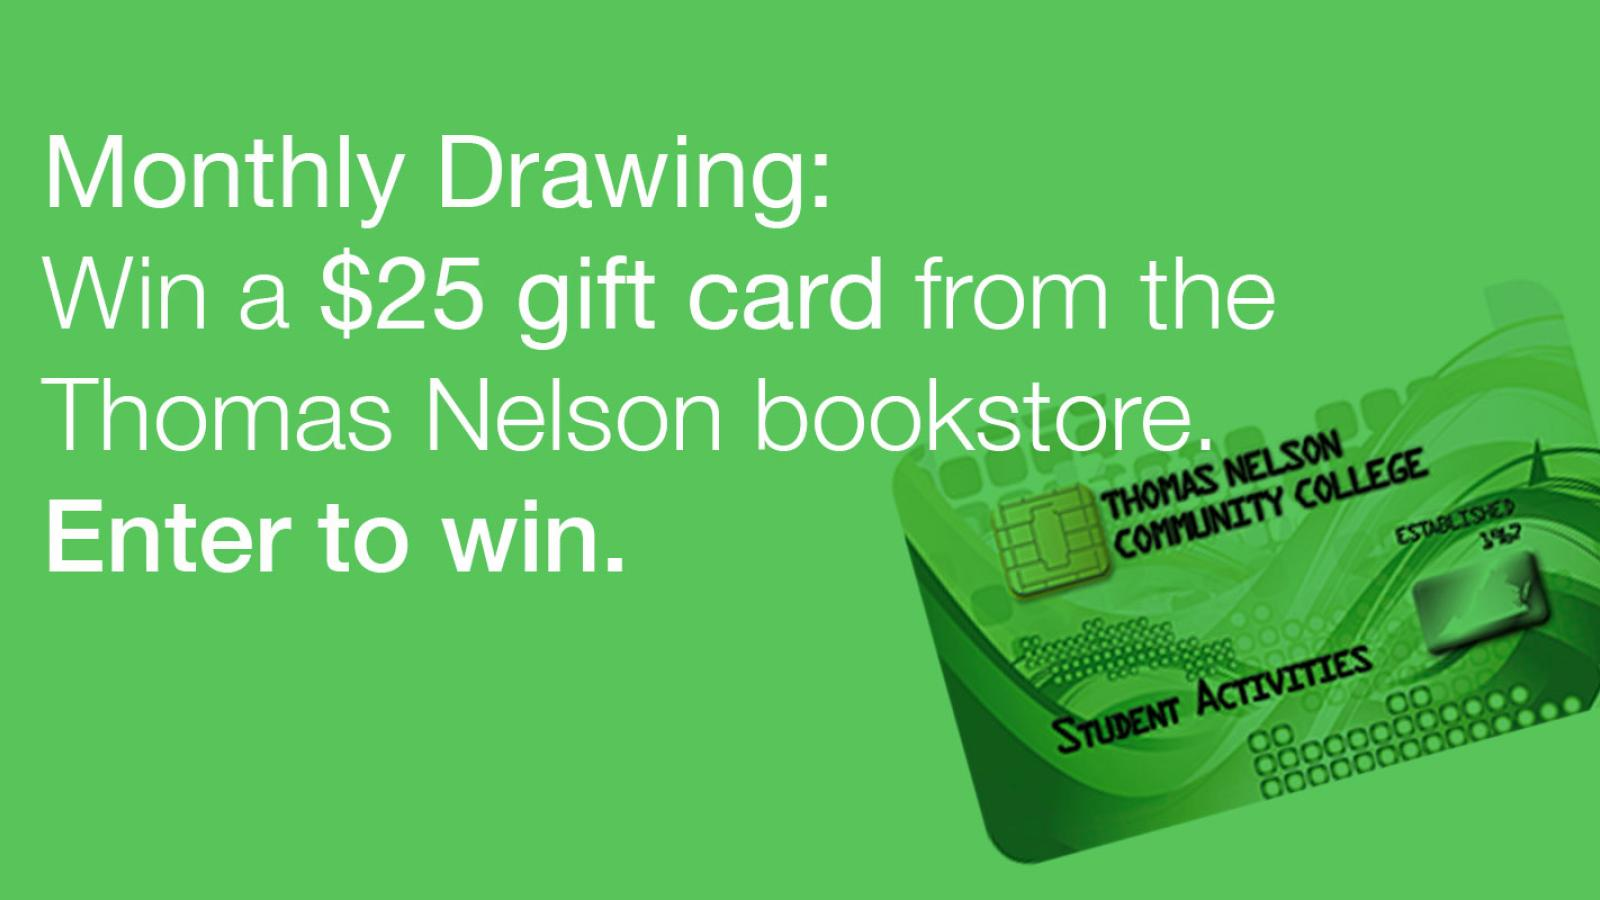 Enter our monthly drawing for a chance to win a $25 gift card from the Thomas Nelson Bookstore. You may enter once per month.